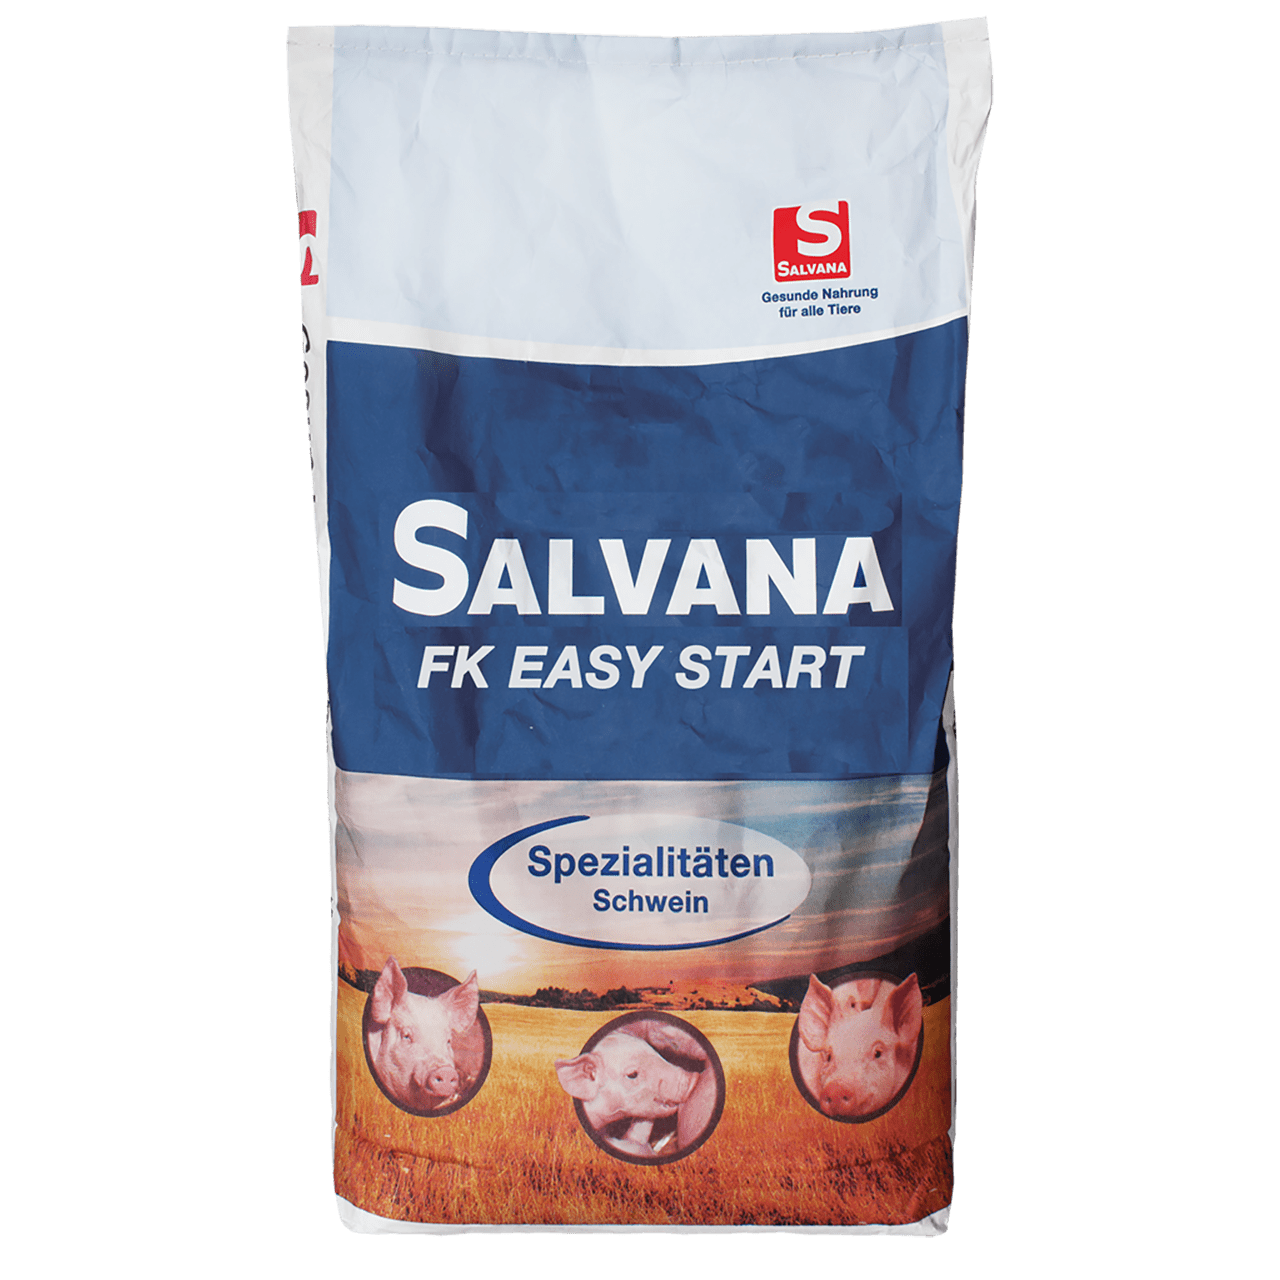 SALVANA FK EASY START